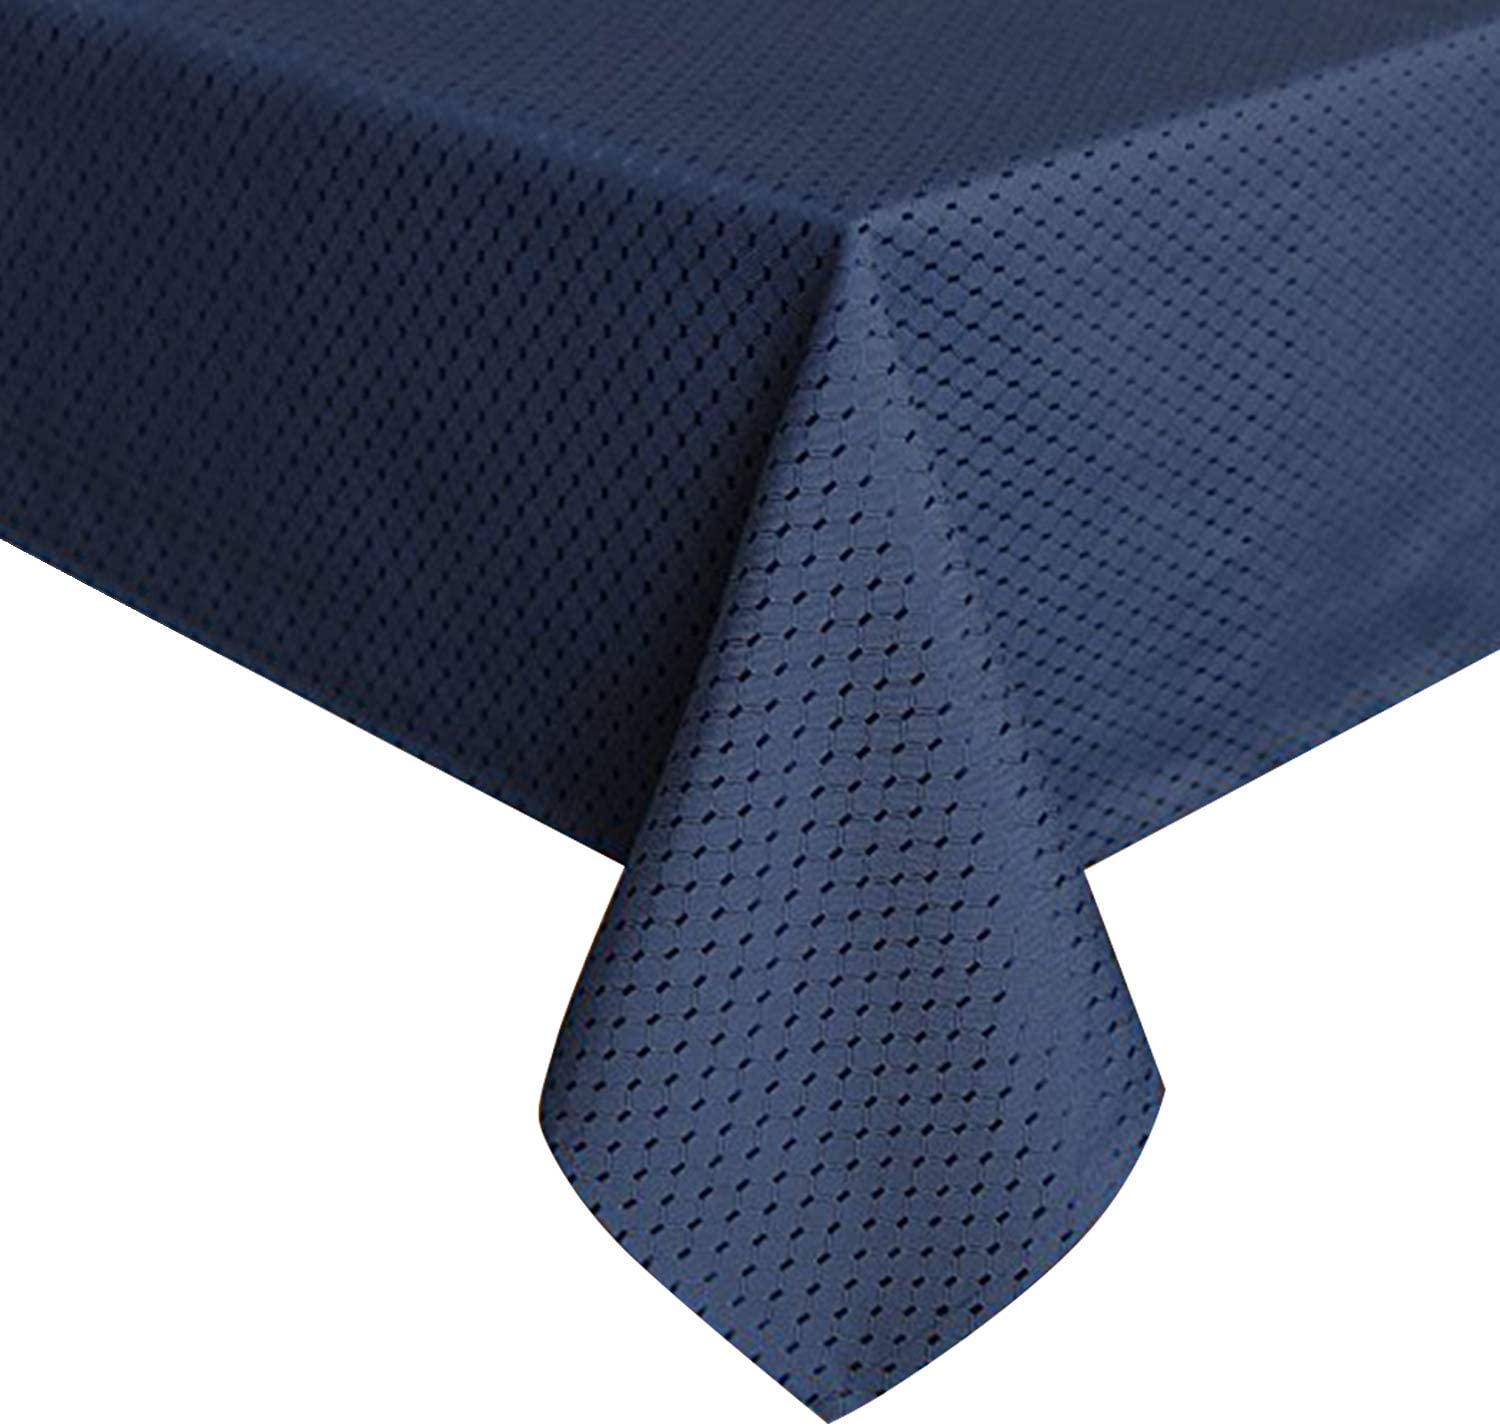 ColorBird Elegant Waffle Jacquard Tablecloth Waterproof Table Cover for Kitchen Dinning Tabletop Decor (Rectangle/Oblong, 60 x 120 Inch, Navy Blue)